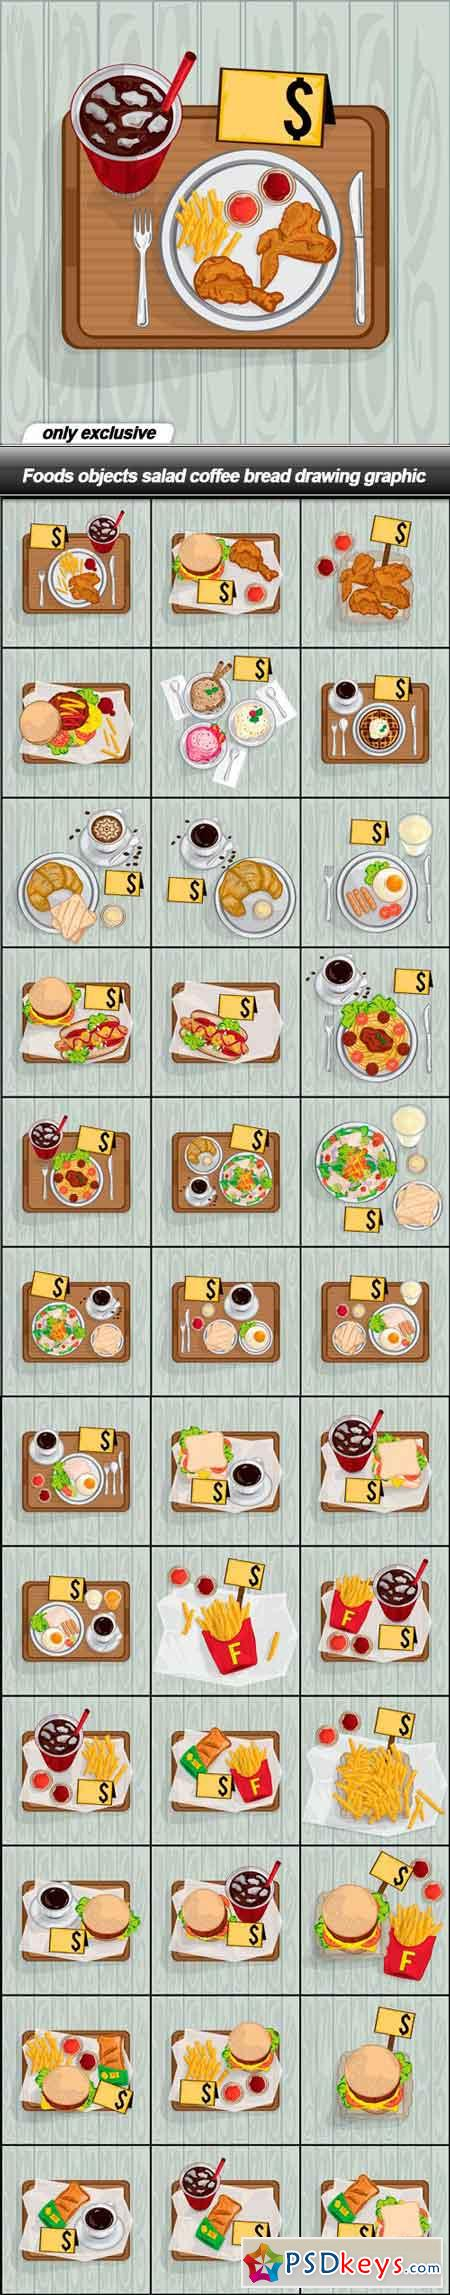 Foods objects salad coffee bread drawing graphic - 37 EPS